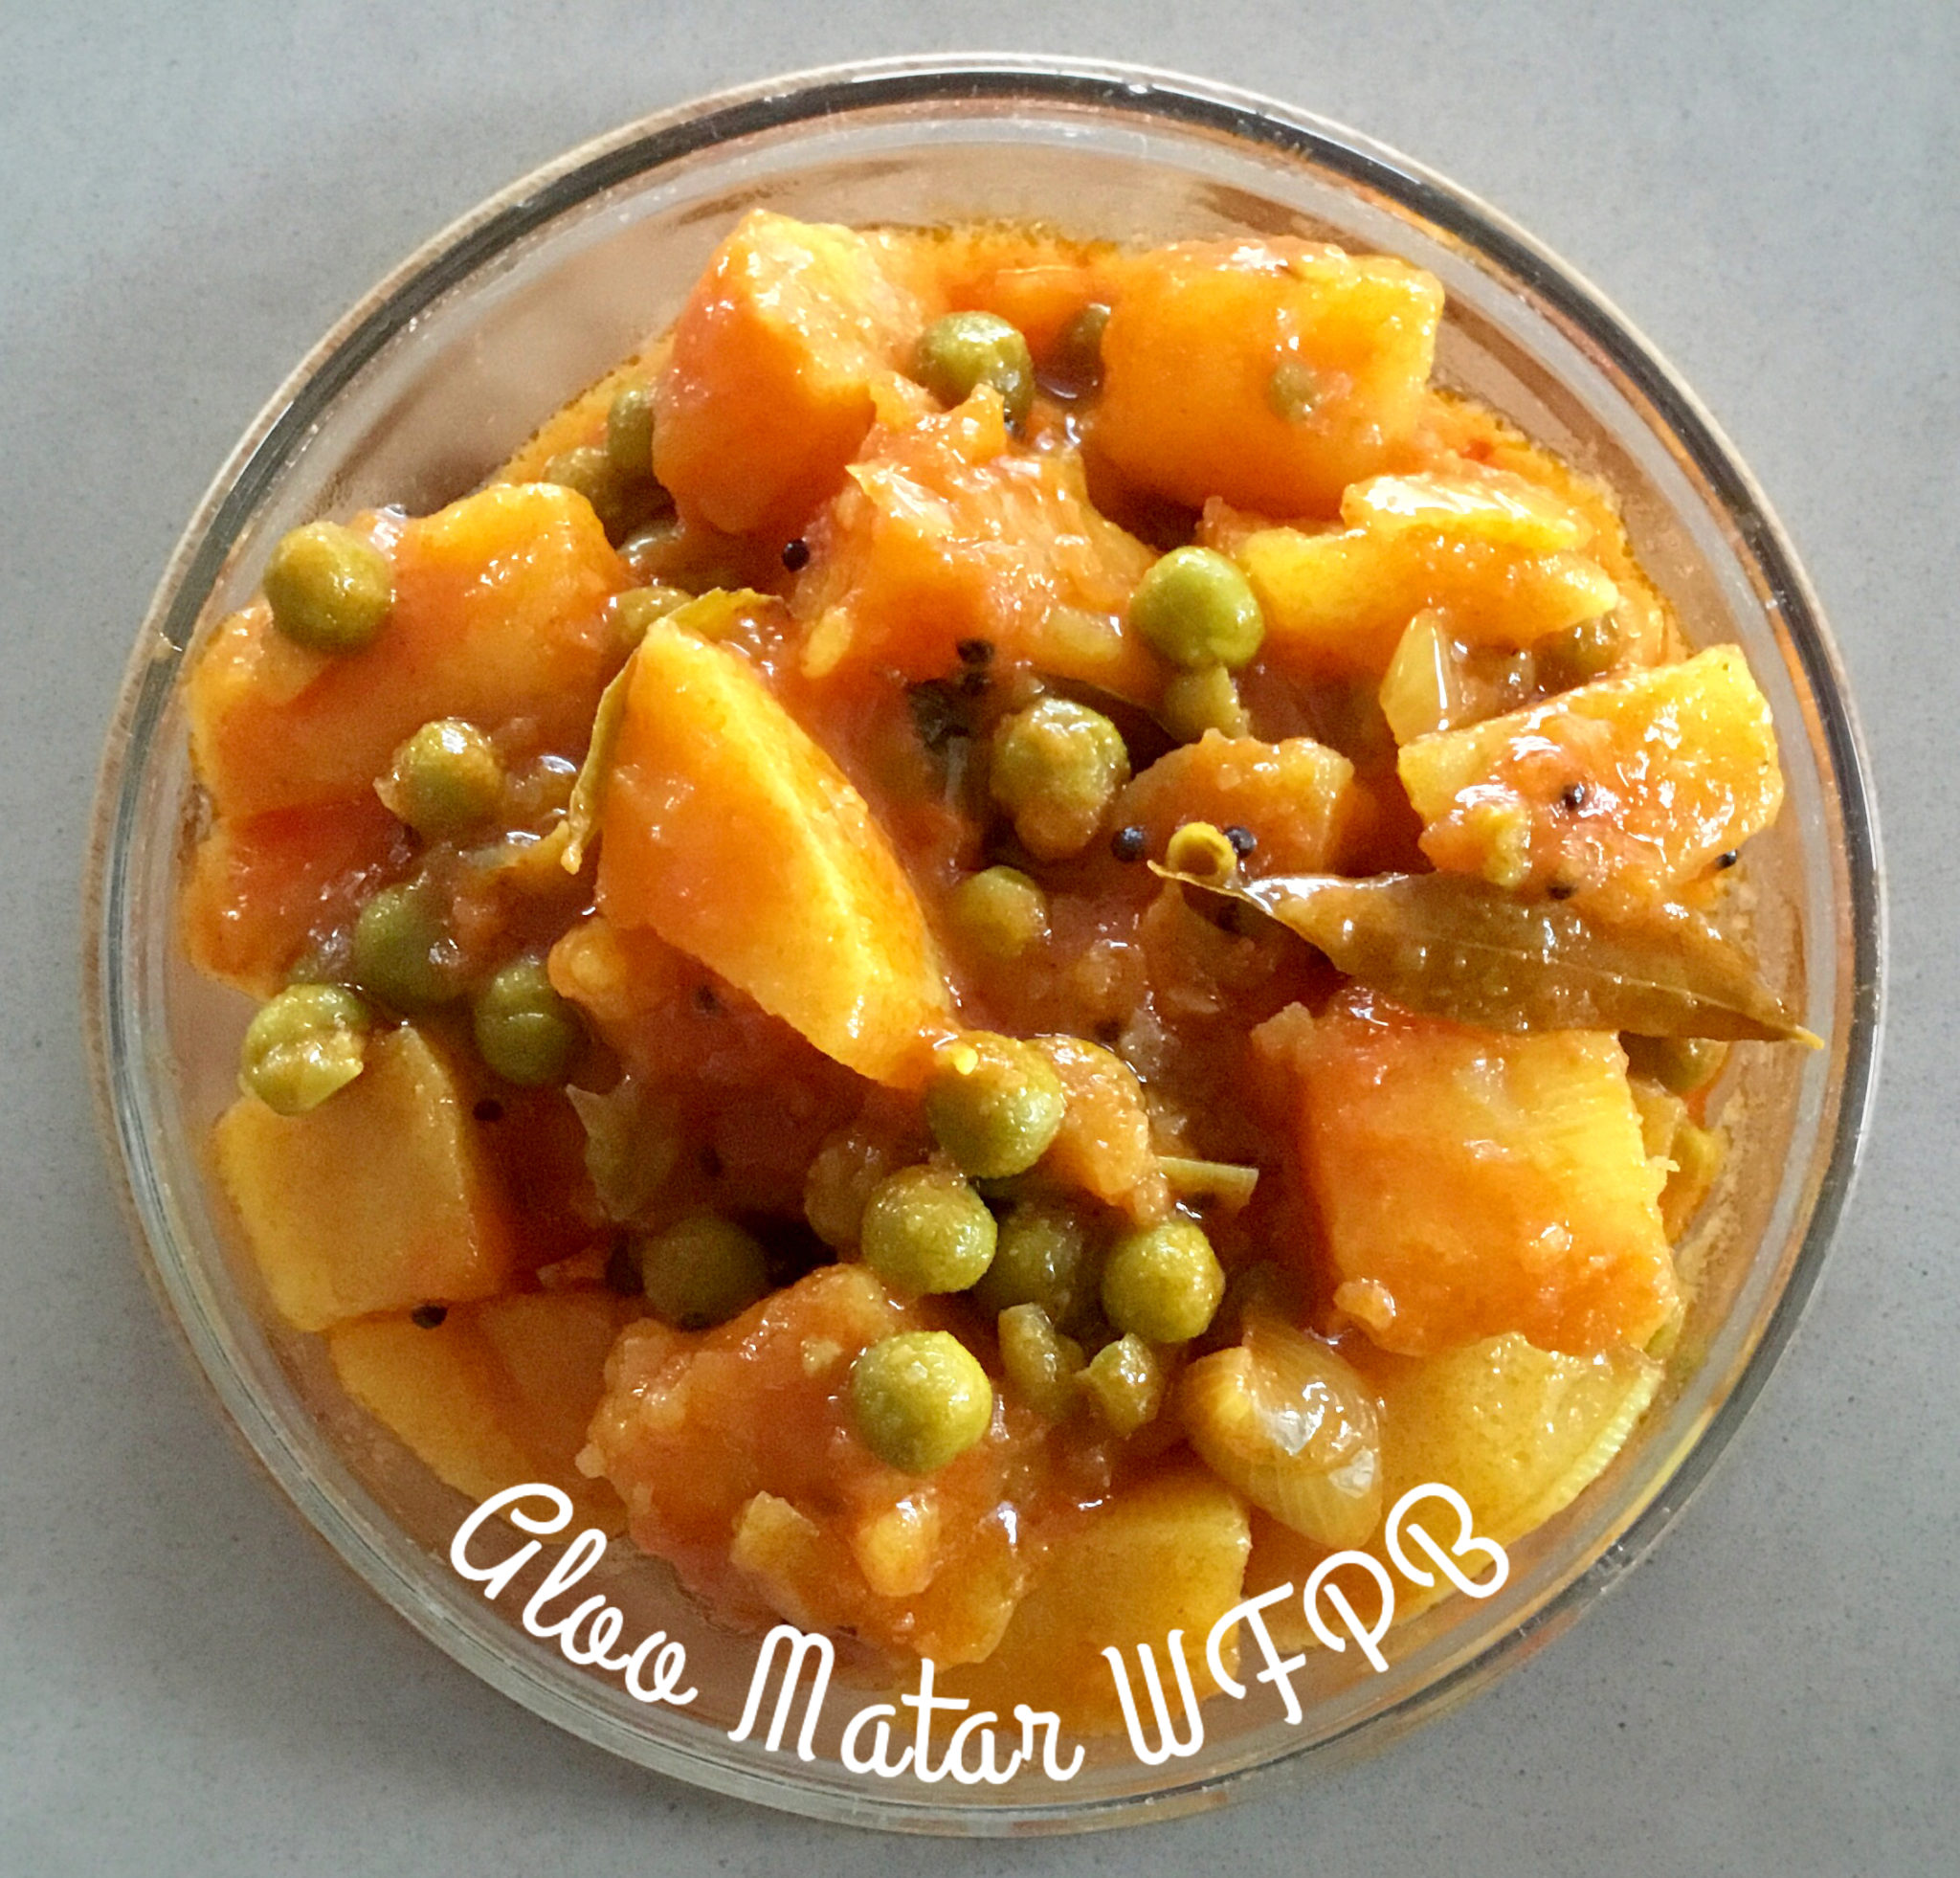 ALOO MATAR WFPB in a round glass bowl